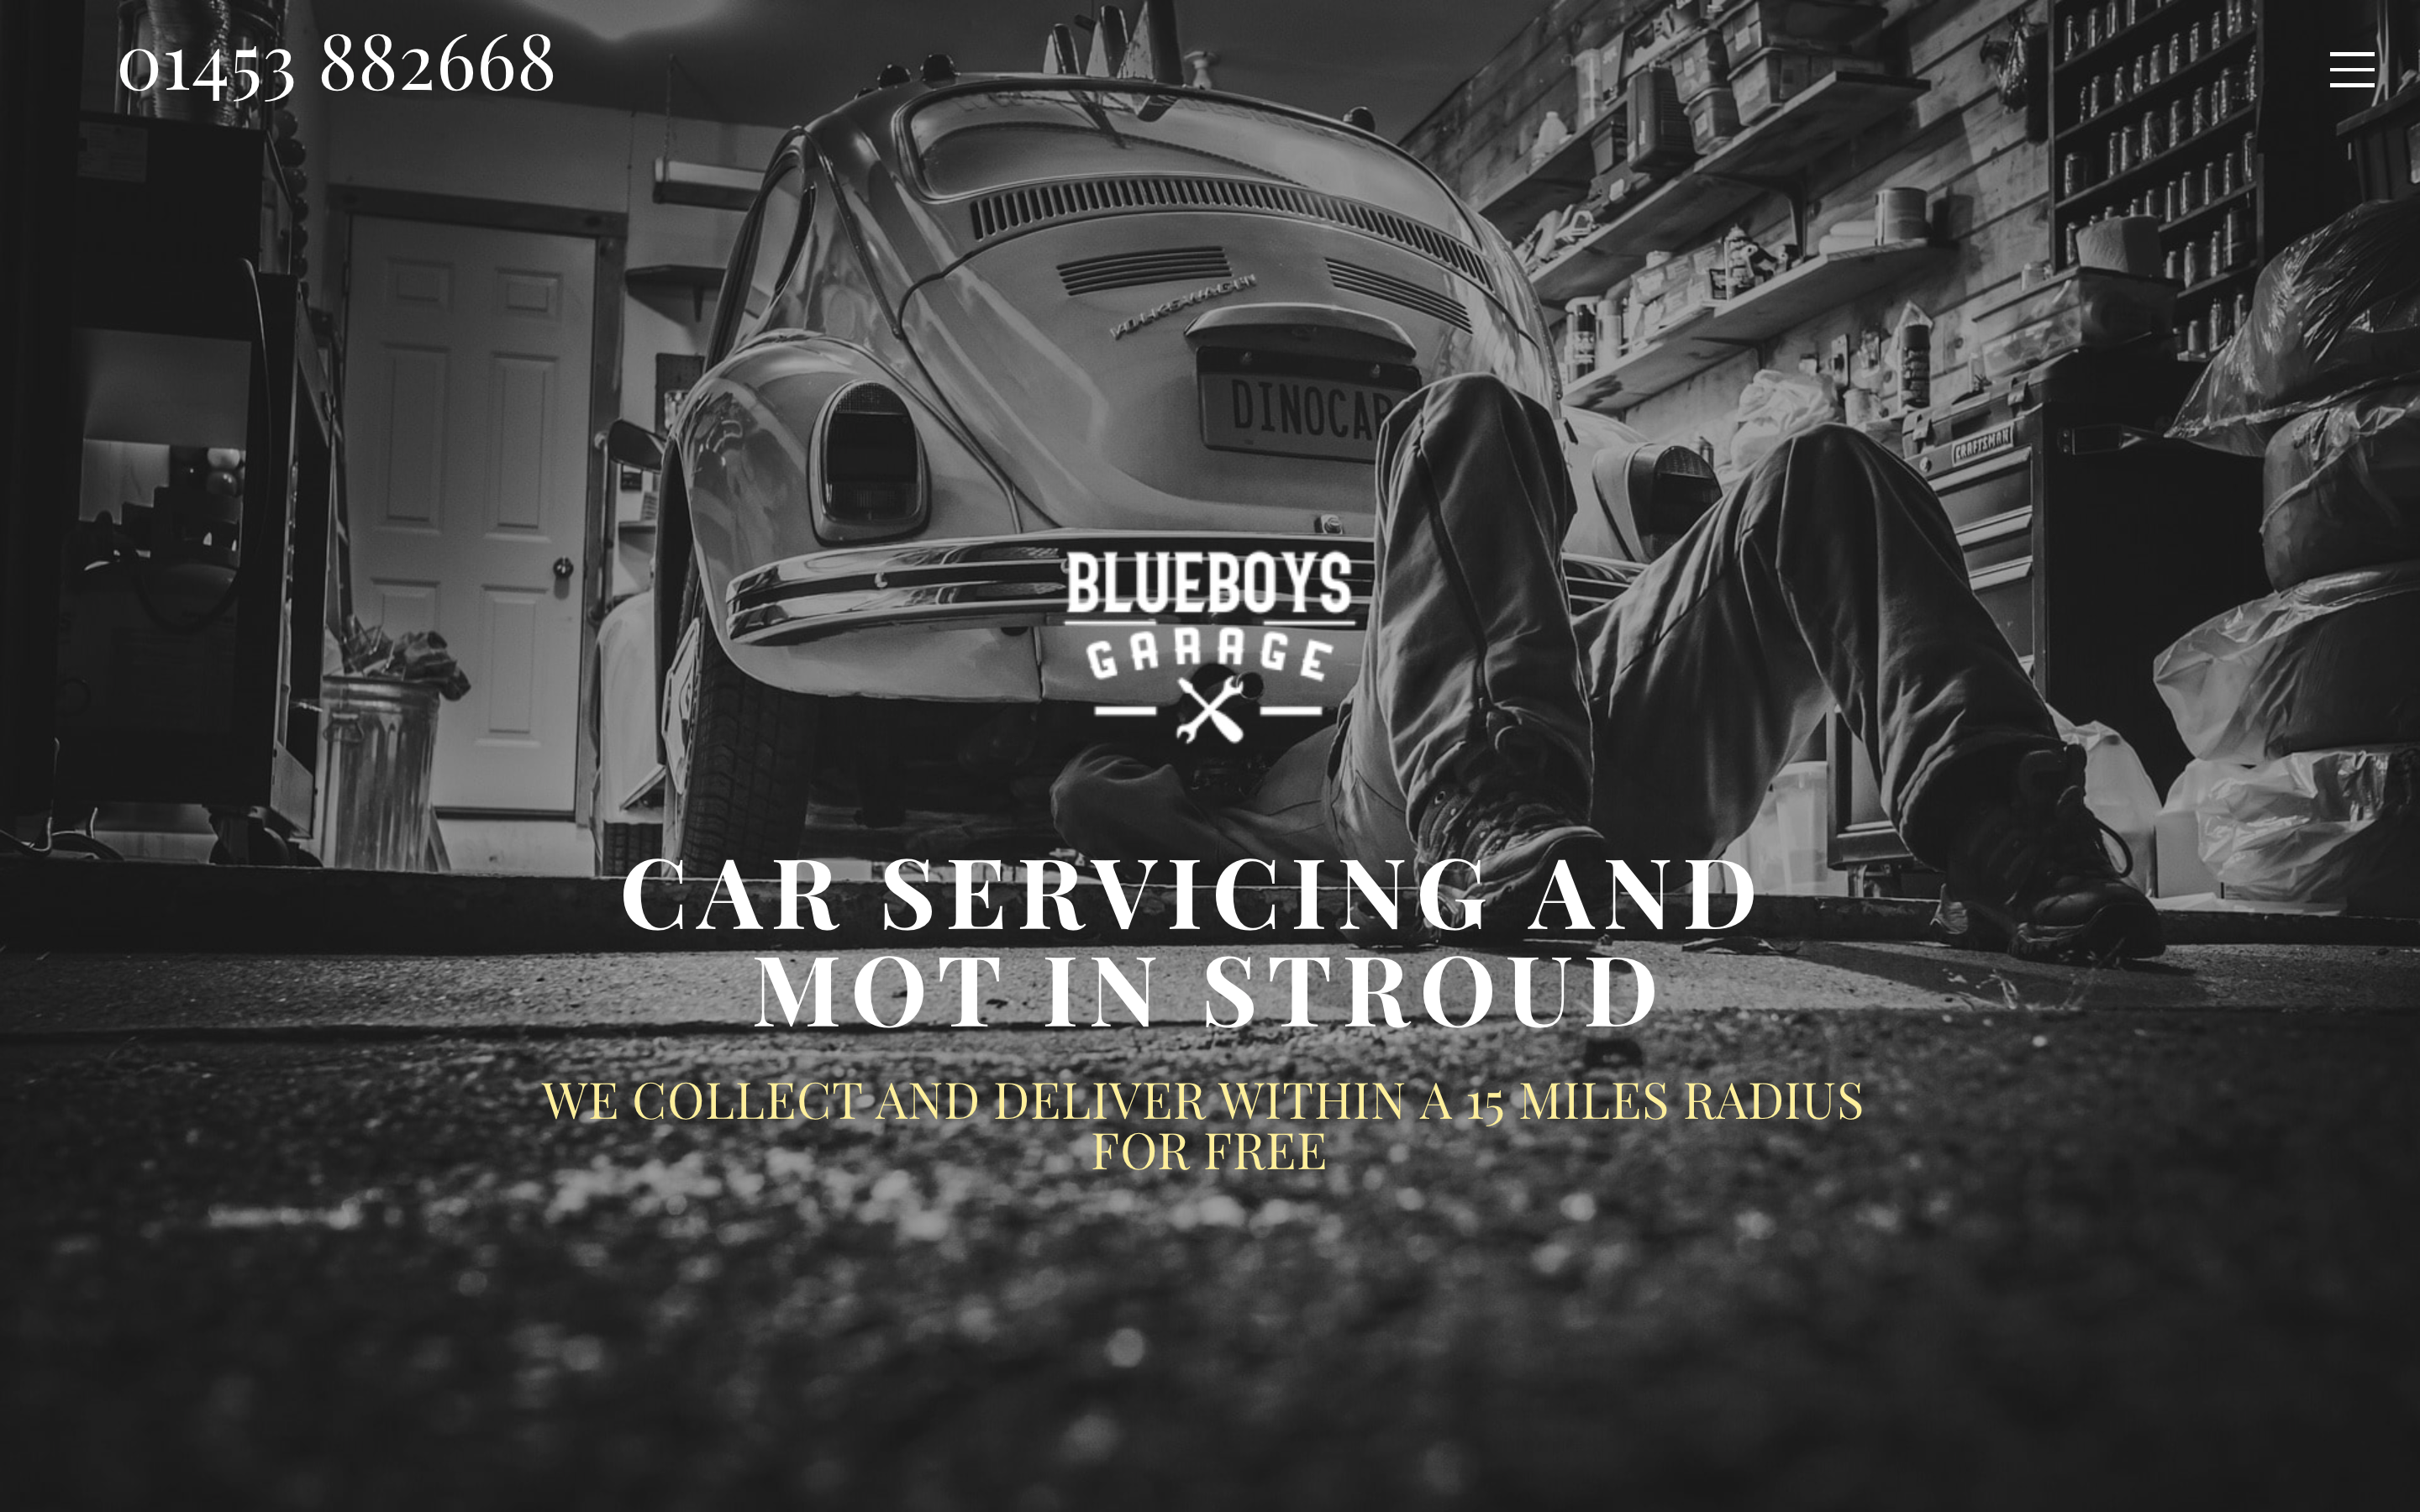 Car Servicing and MOT in Stroud